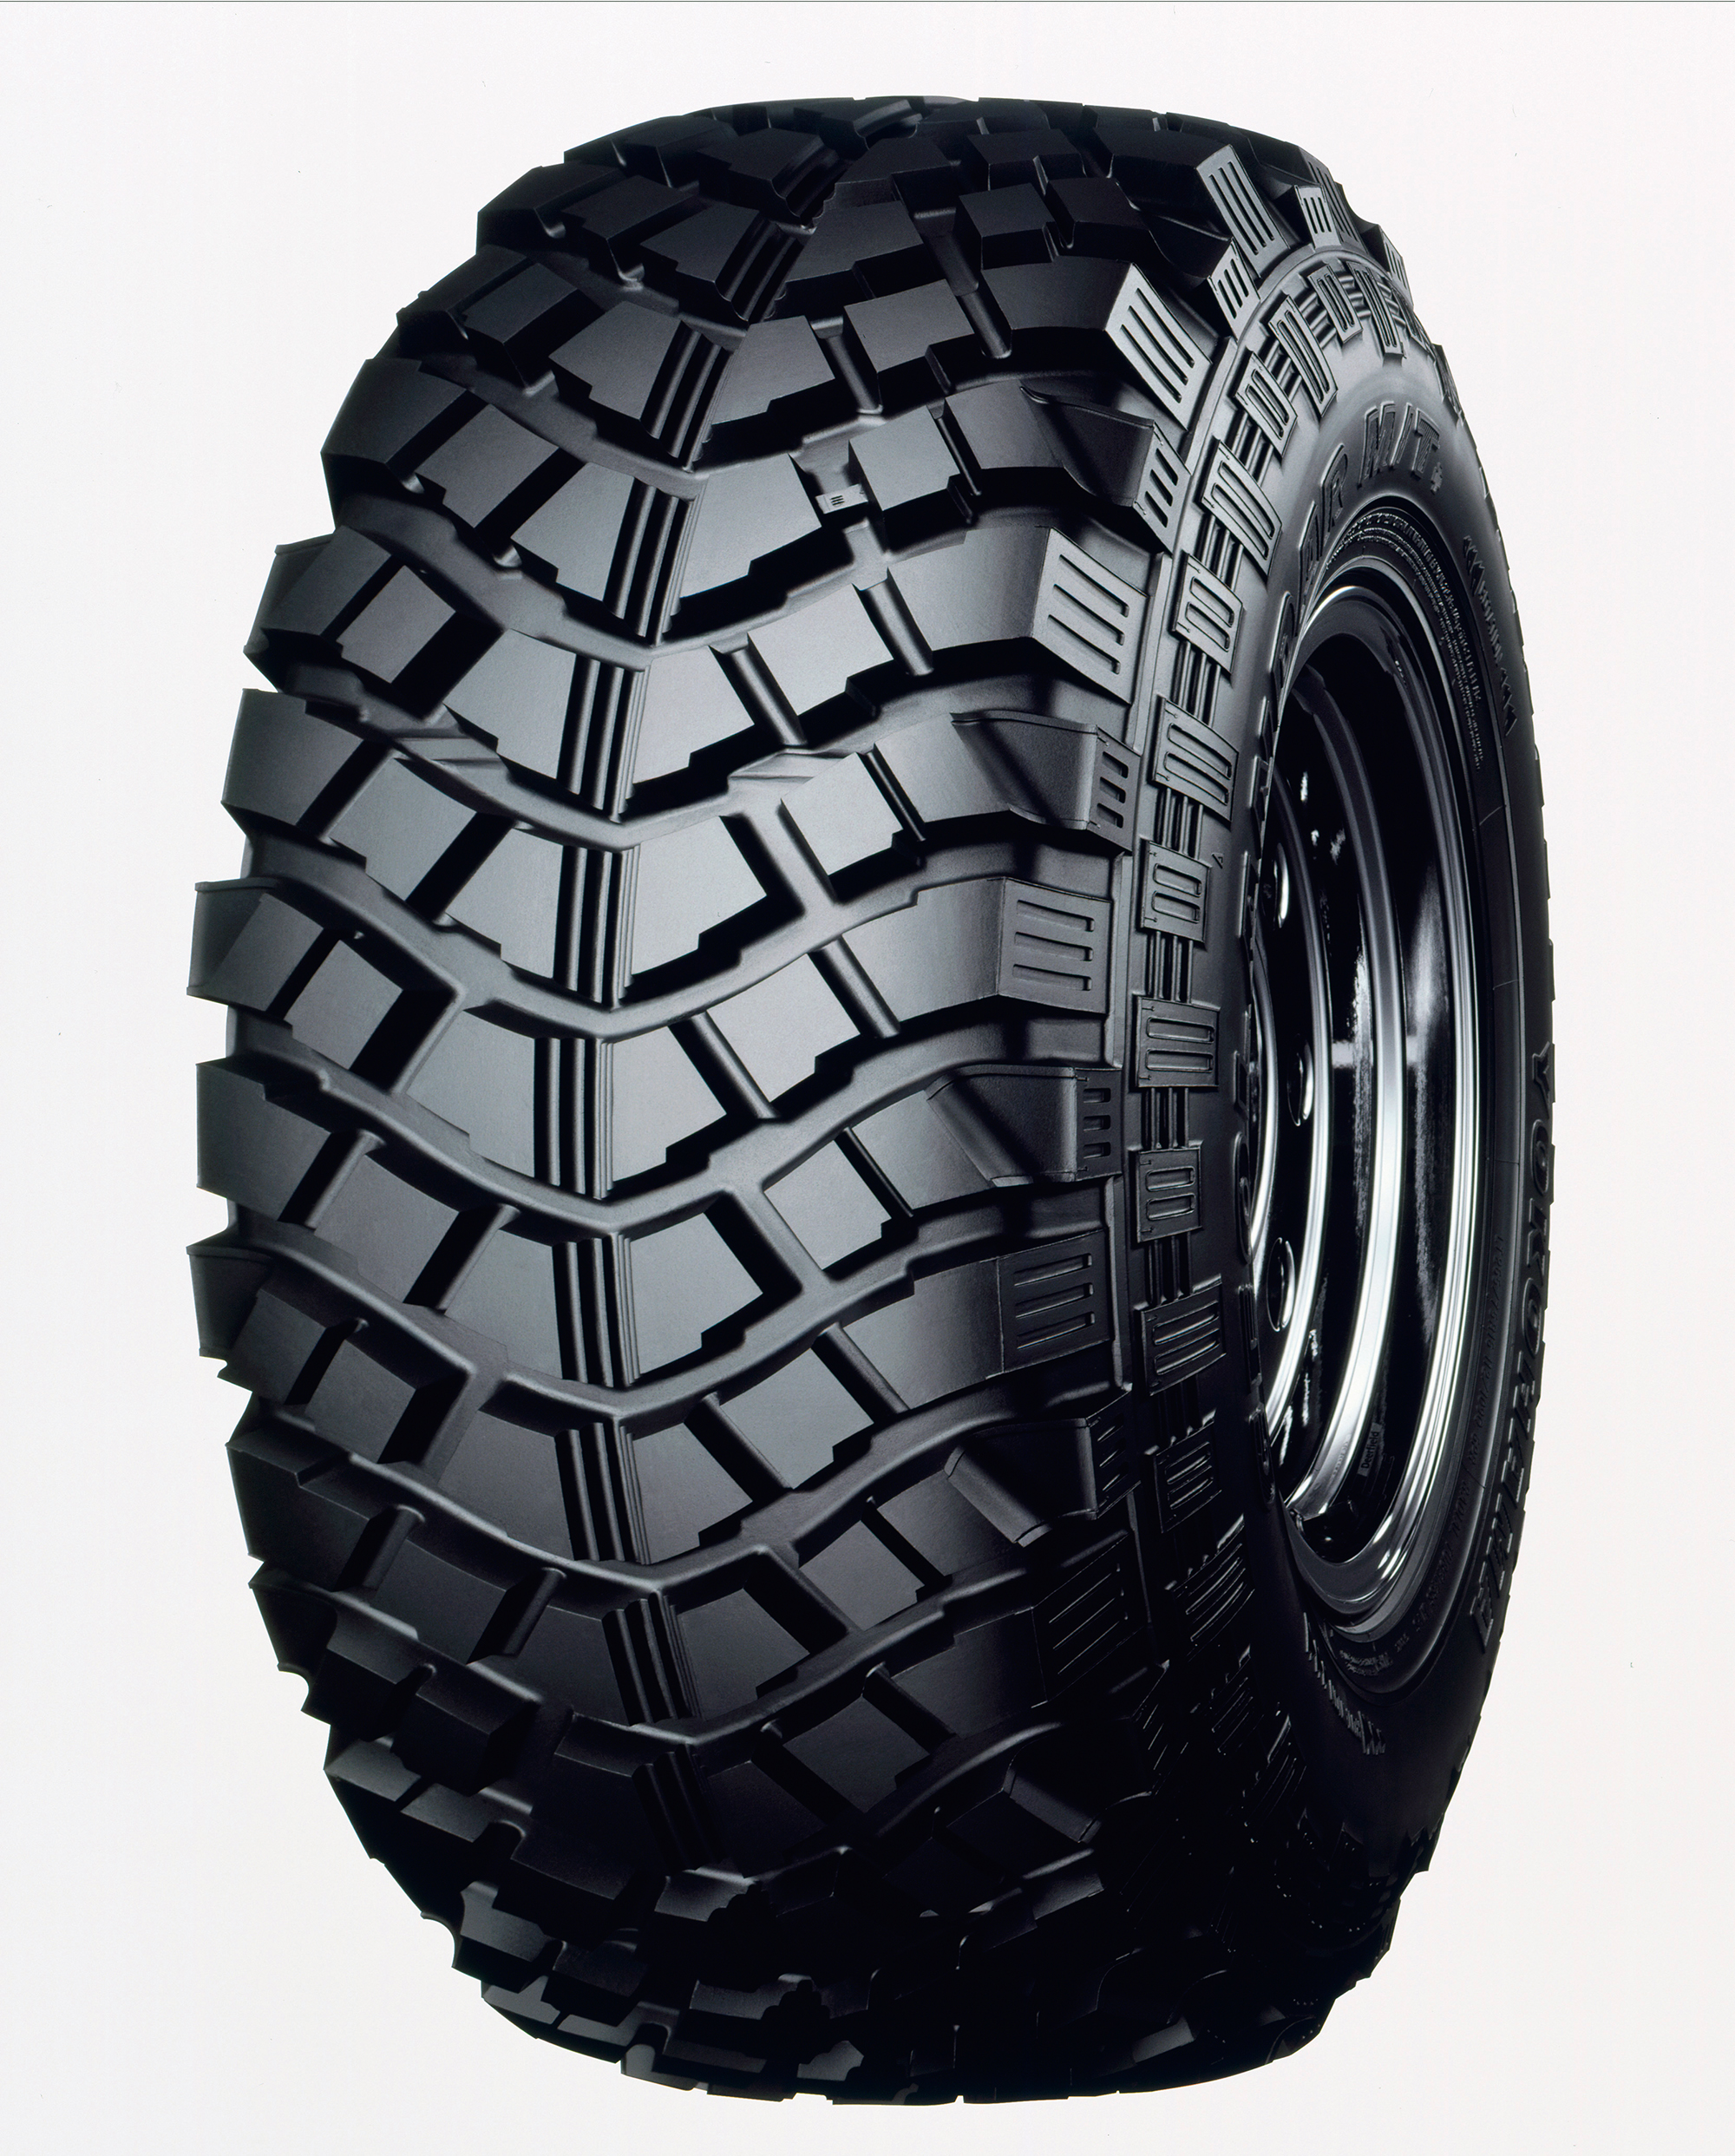 31x10 50r15 Tires >> Yokohama India introduces Mud-Terrain tyres - Autocar India